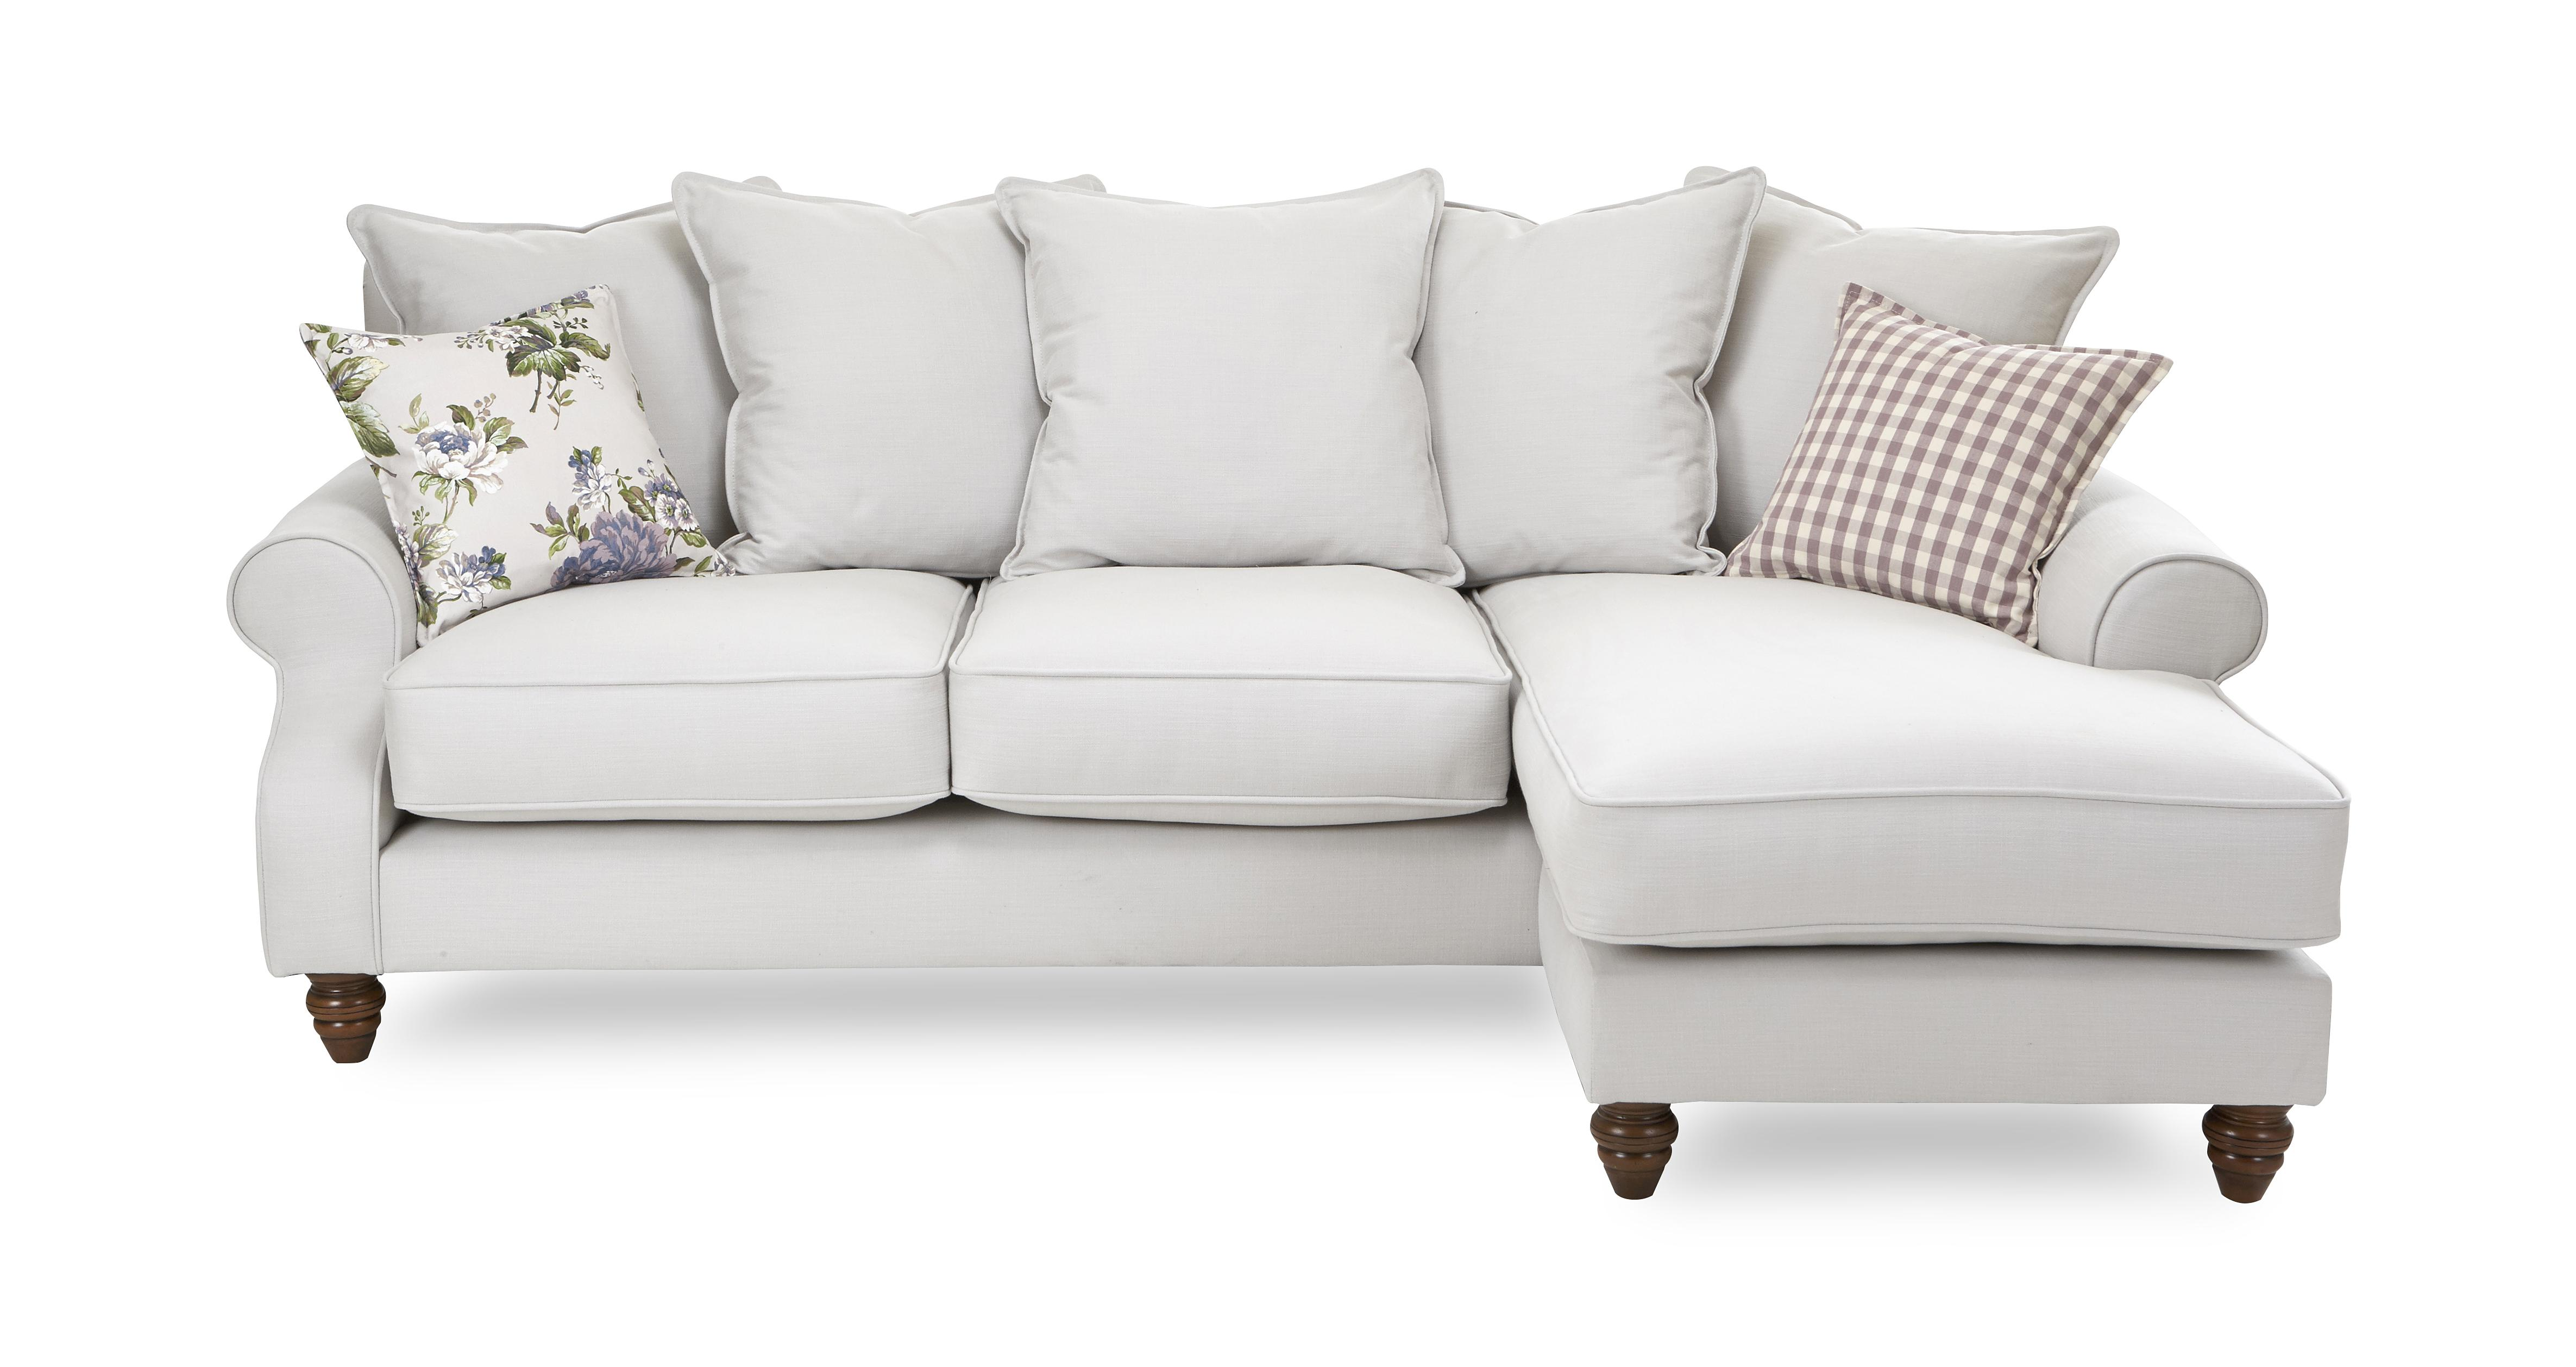 Ellie Plain Right Hand Facing 4 Seater Chaise End Sofa